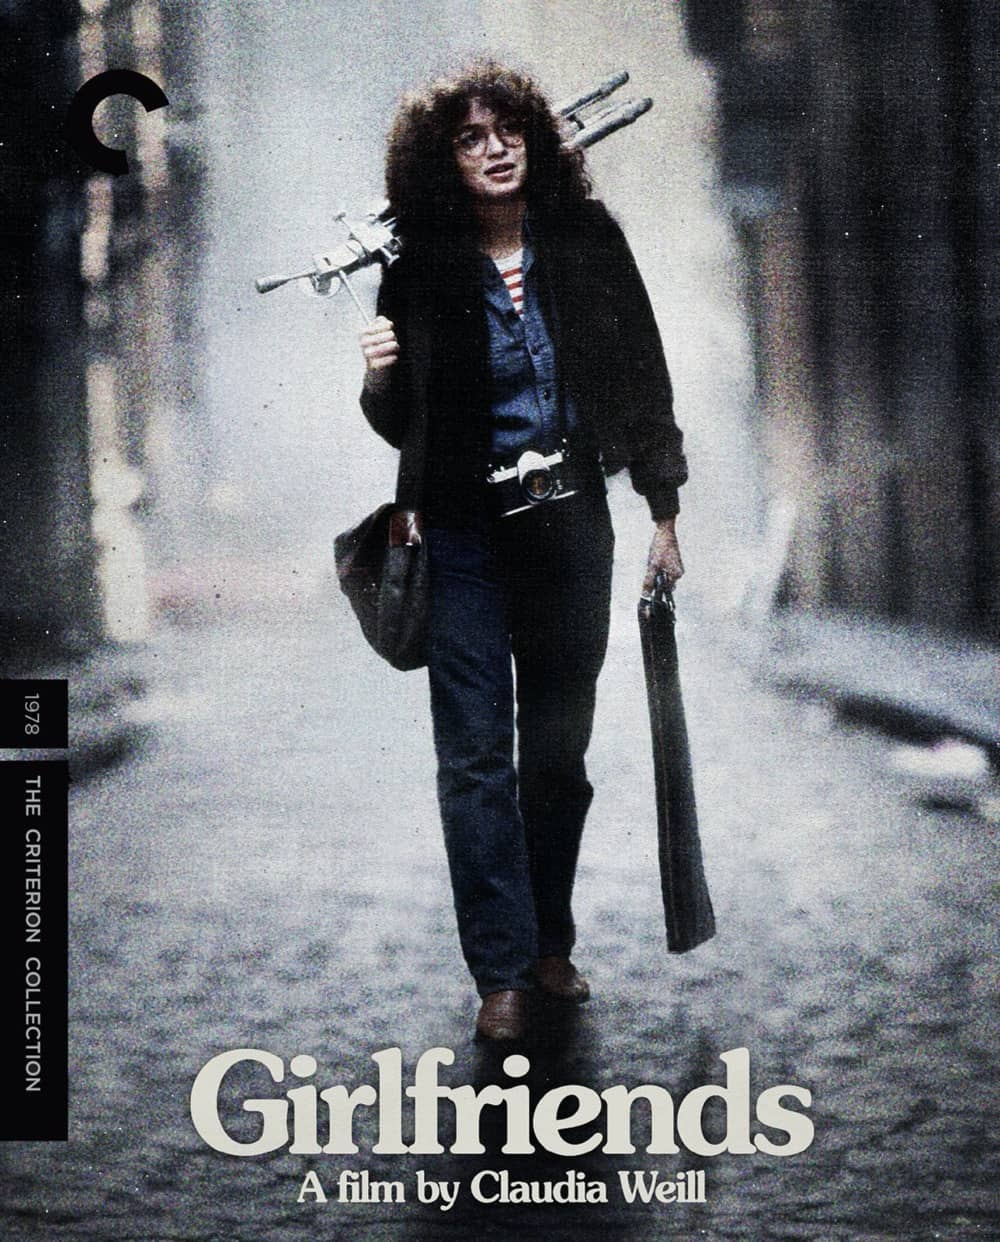 Girlfriends The Criterion Collection Blu-ray Cover